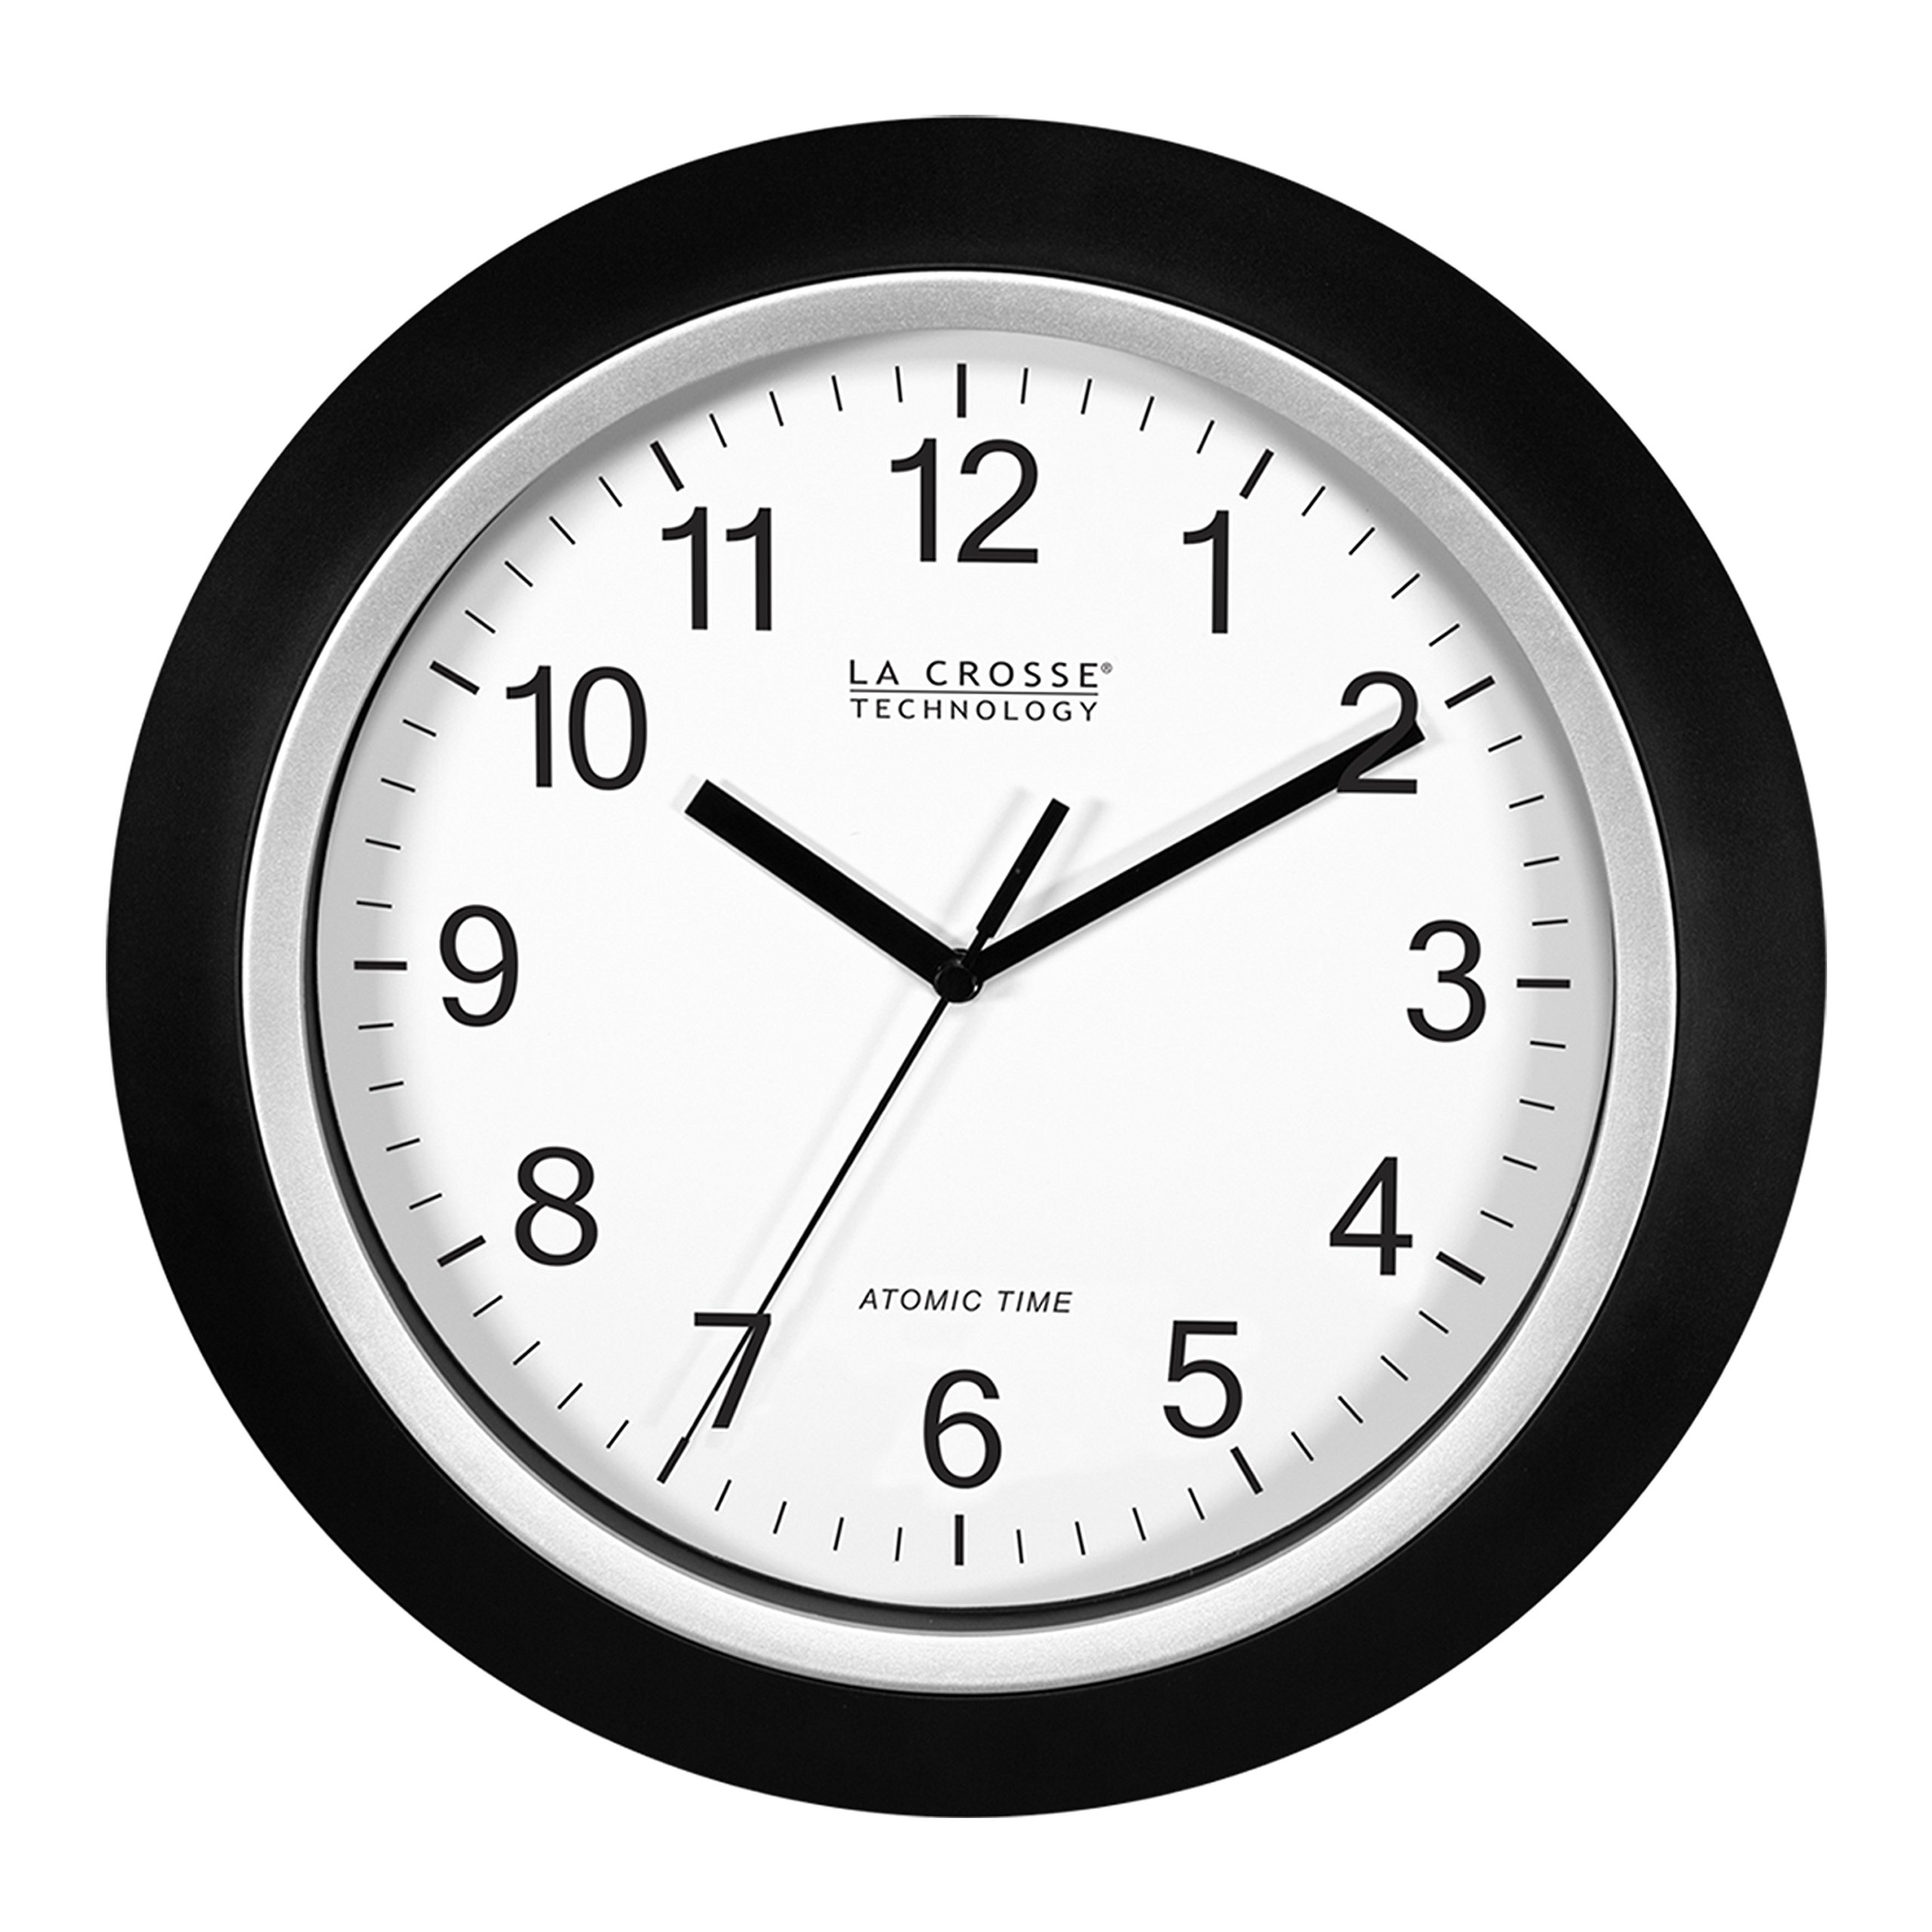 La Crosse Technology WT-3129B 12 Inch Atomic Analog Wall Clock, Black by La Crosse Technology